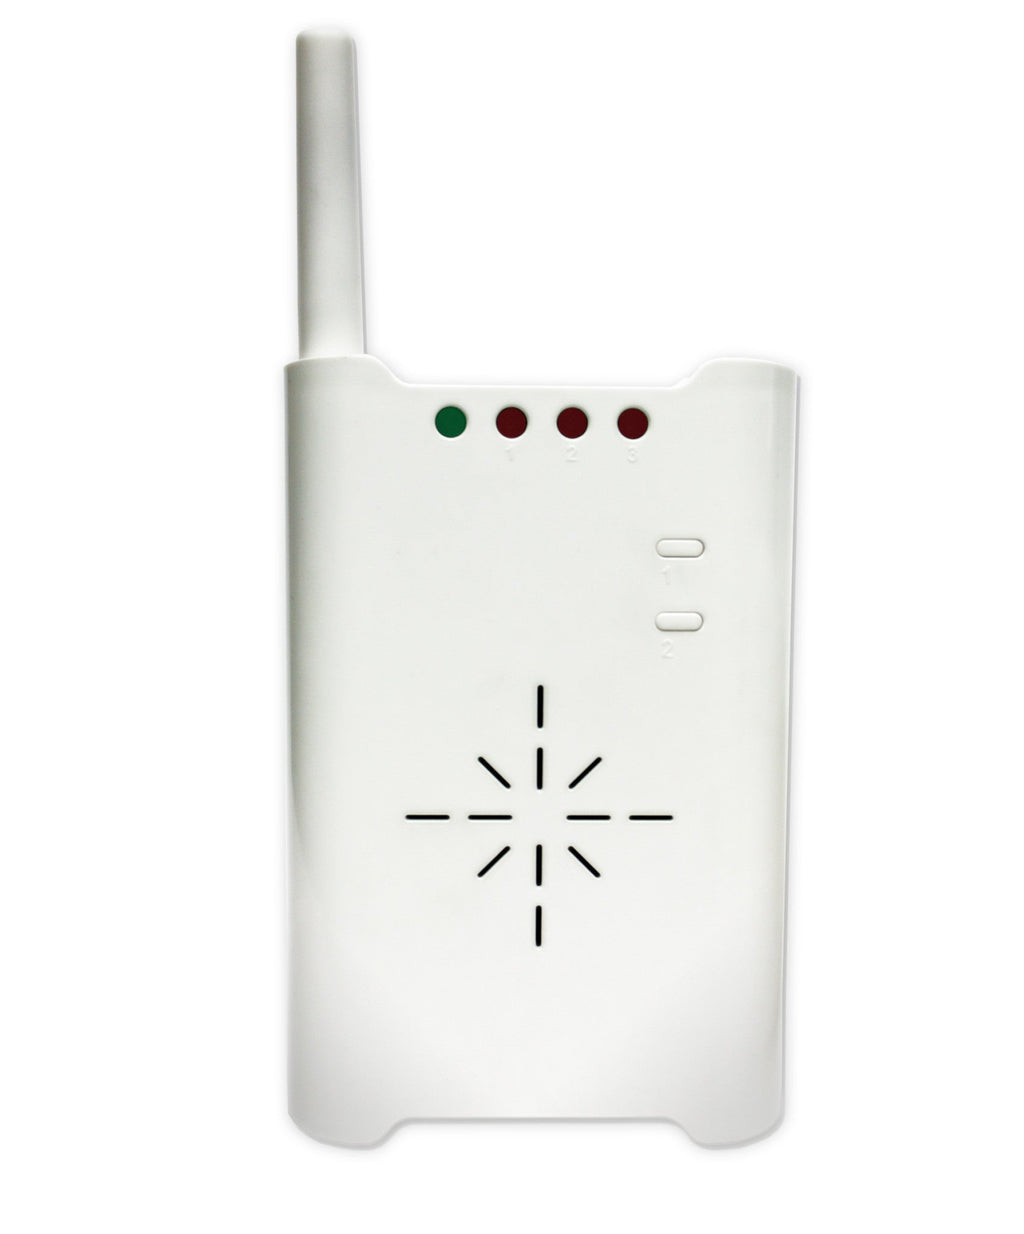 OPTEX TR20U WIRELESS 2000 REPEATER - PAM Distributing Co